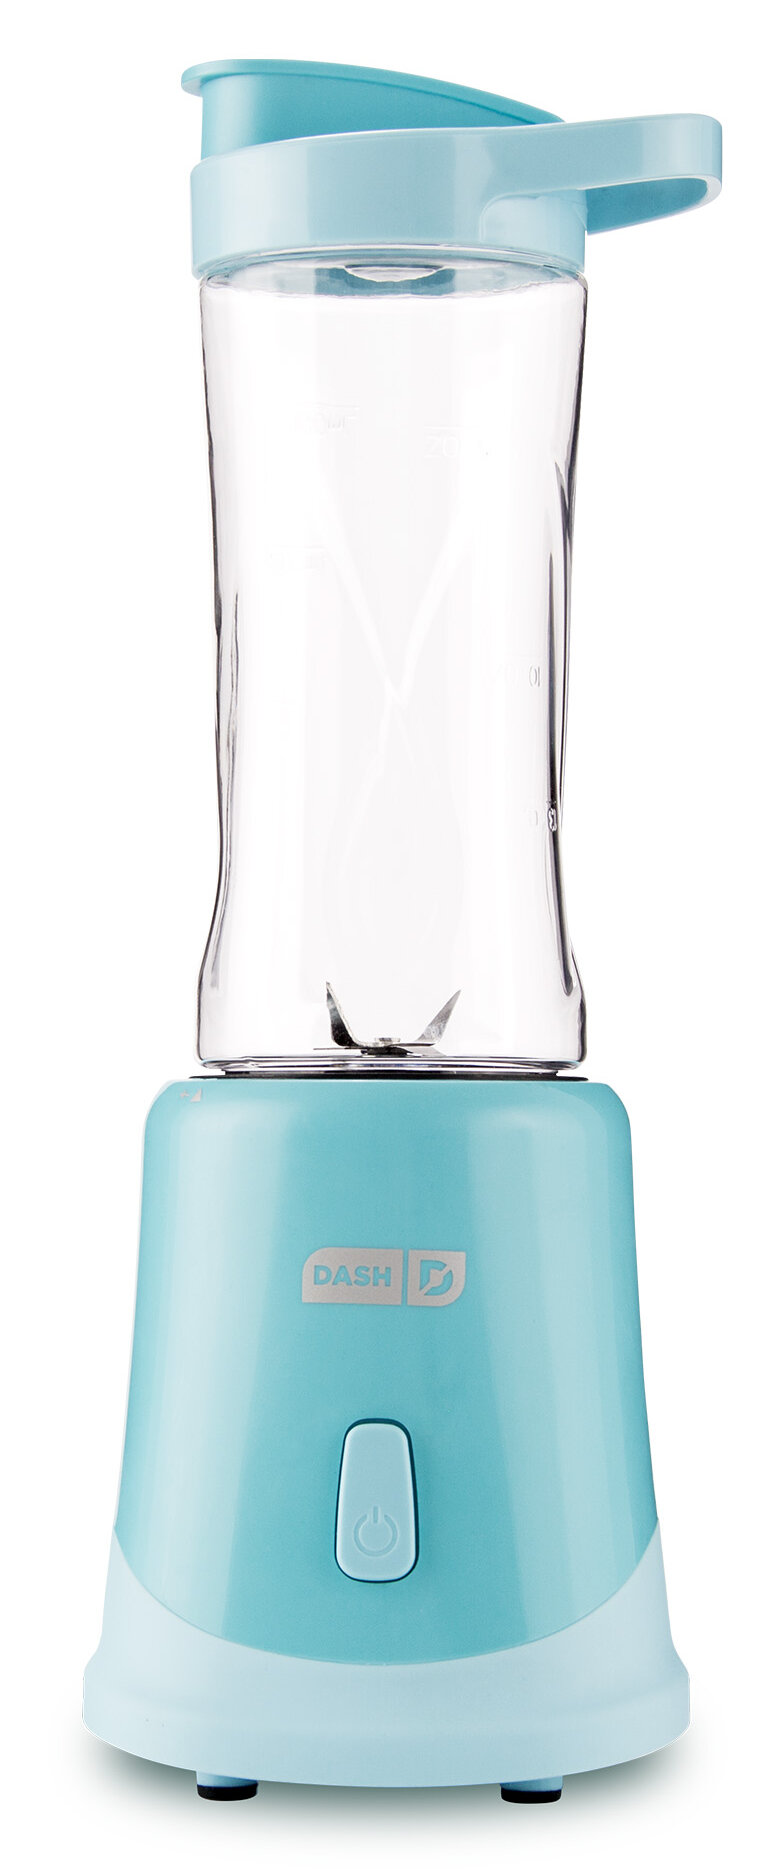 DASH Personal Countertop Blender & Reviews | Wayfair